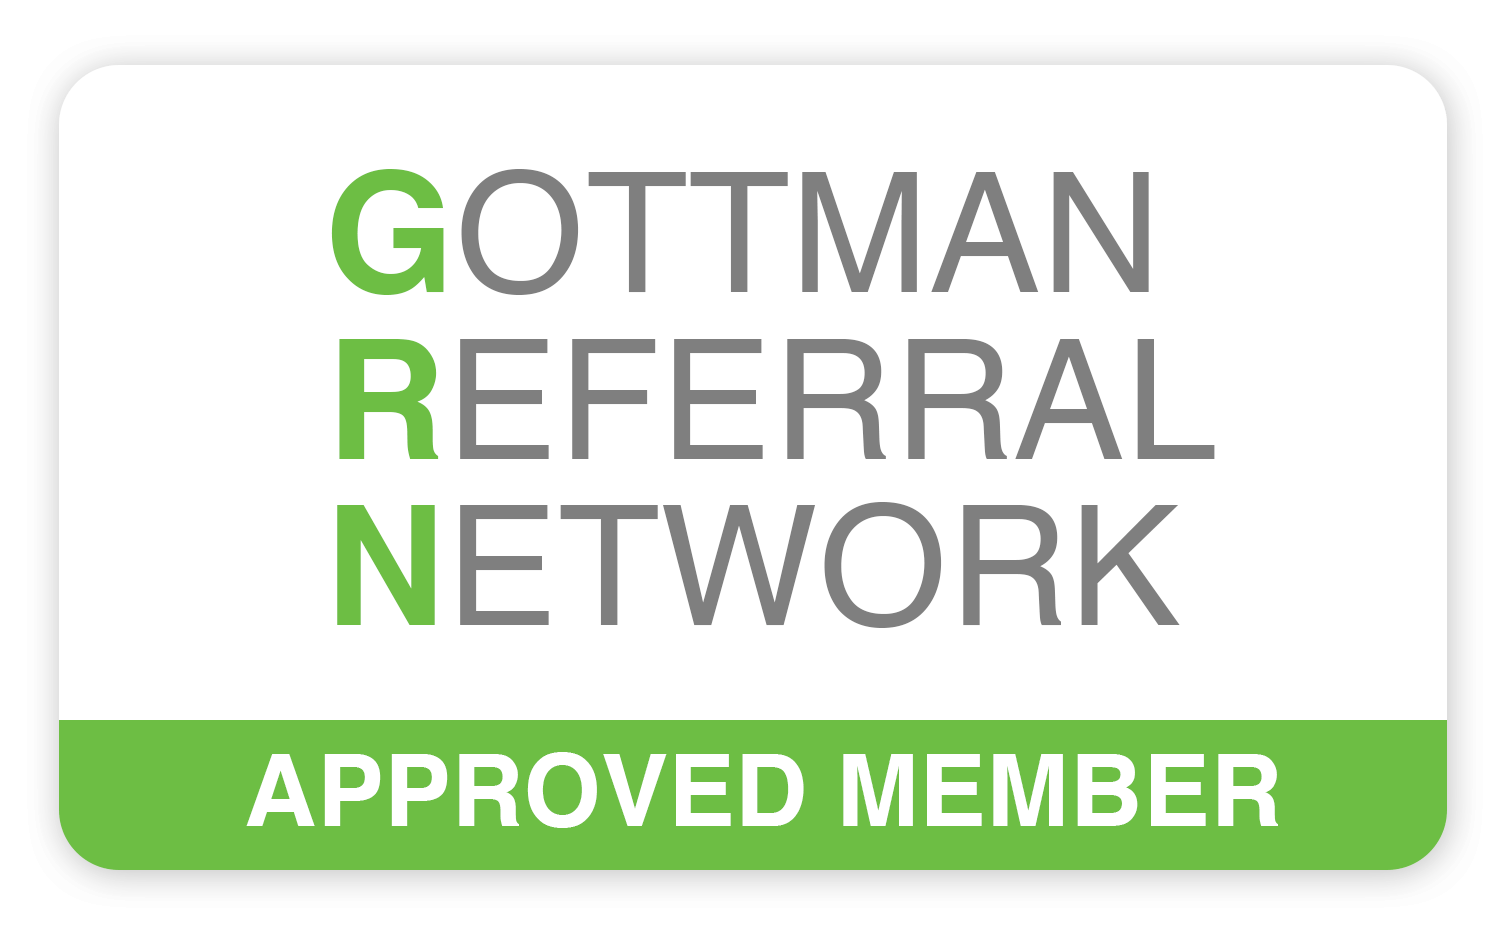 Jeff Hay's profile on the Gottman Referral Network